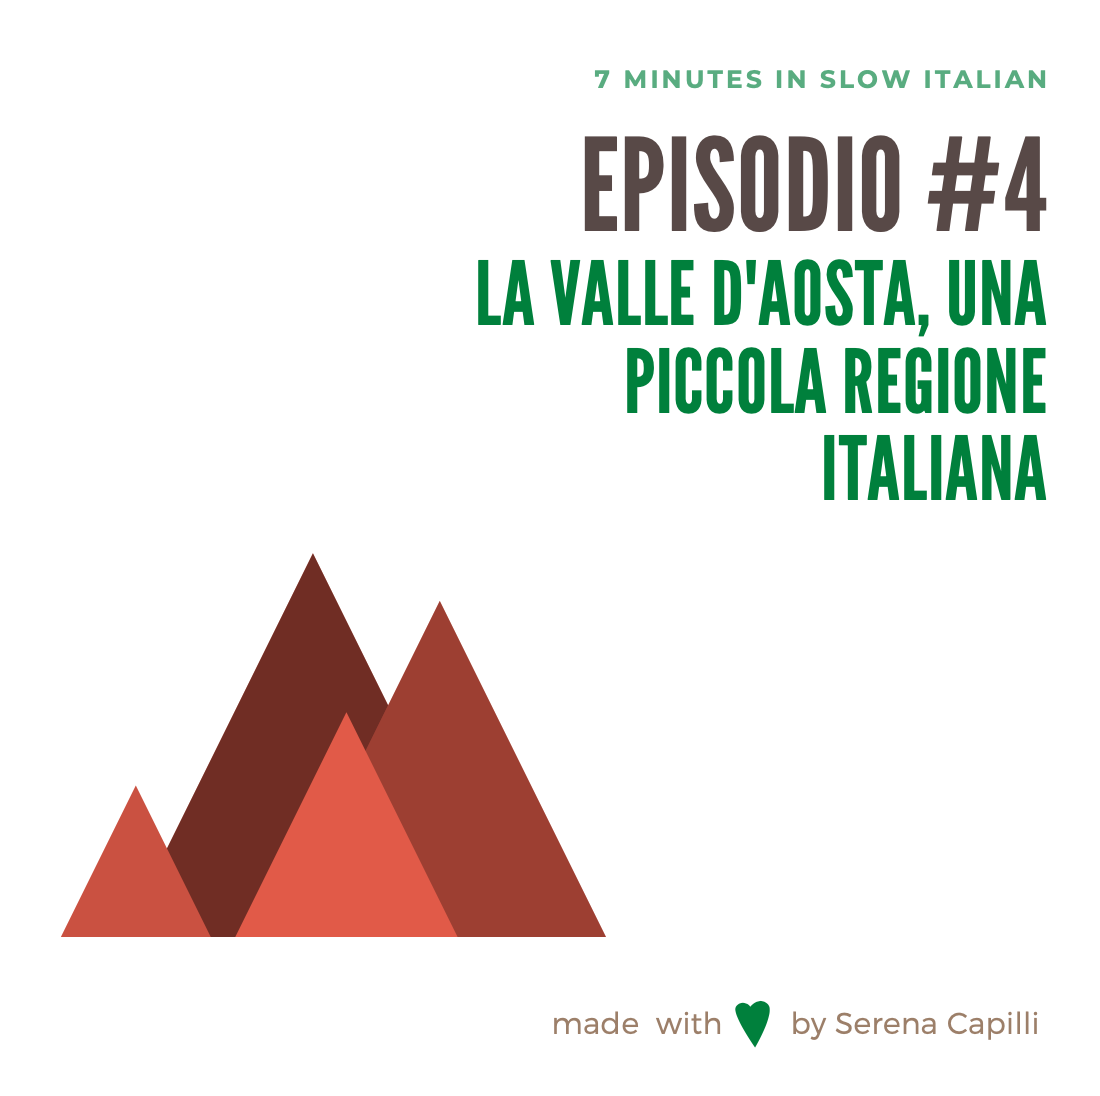 EPISODIO #4 – LA VALLE D'AOSTA